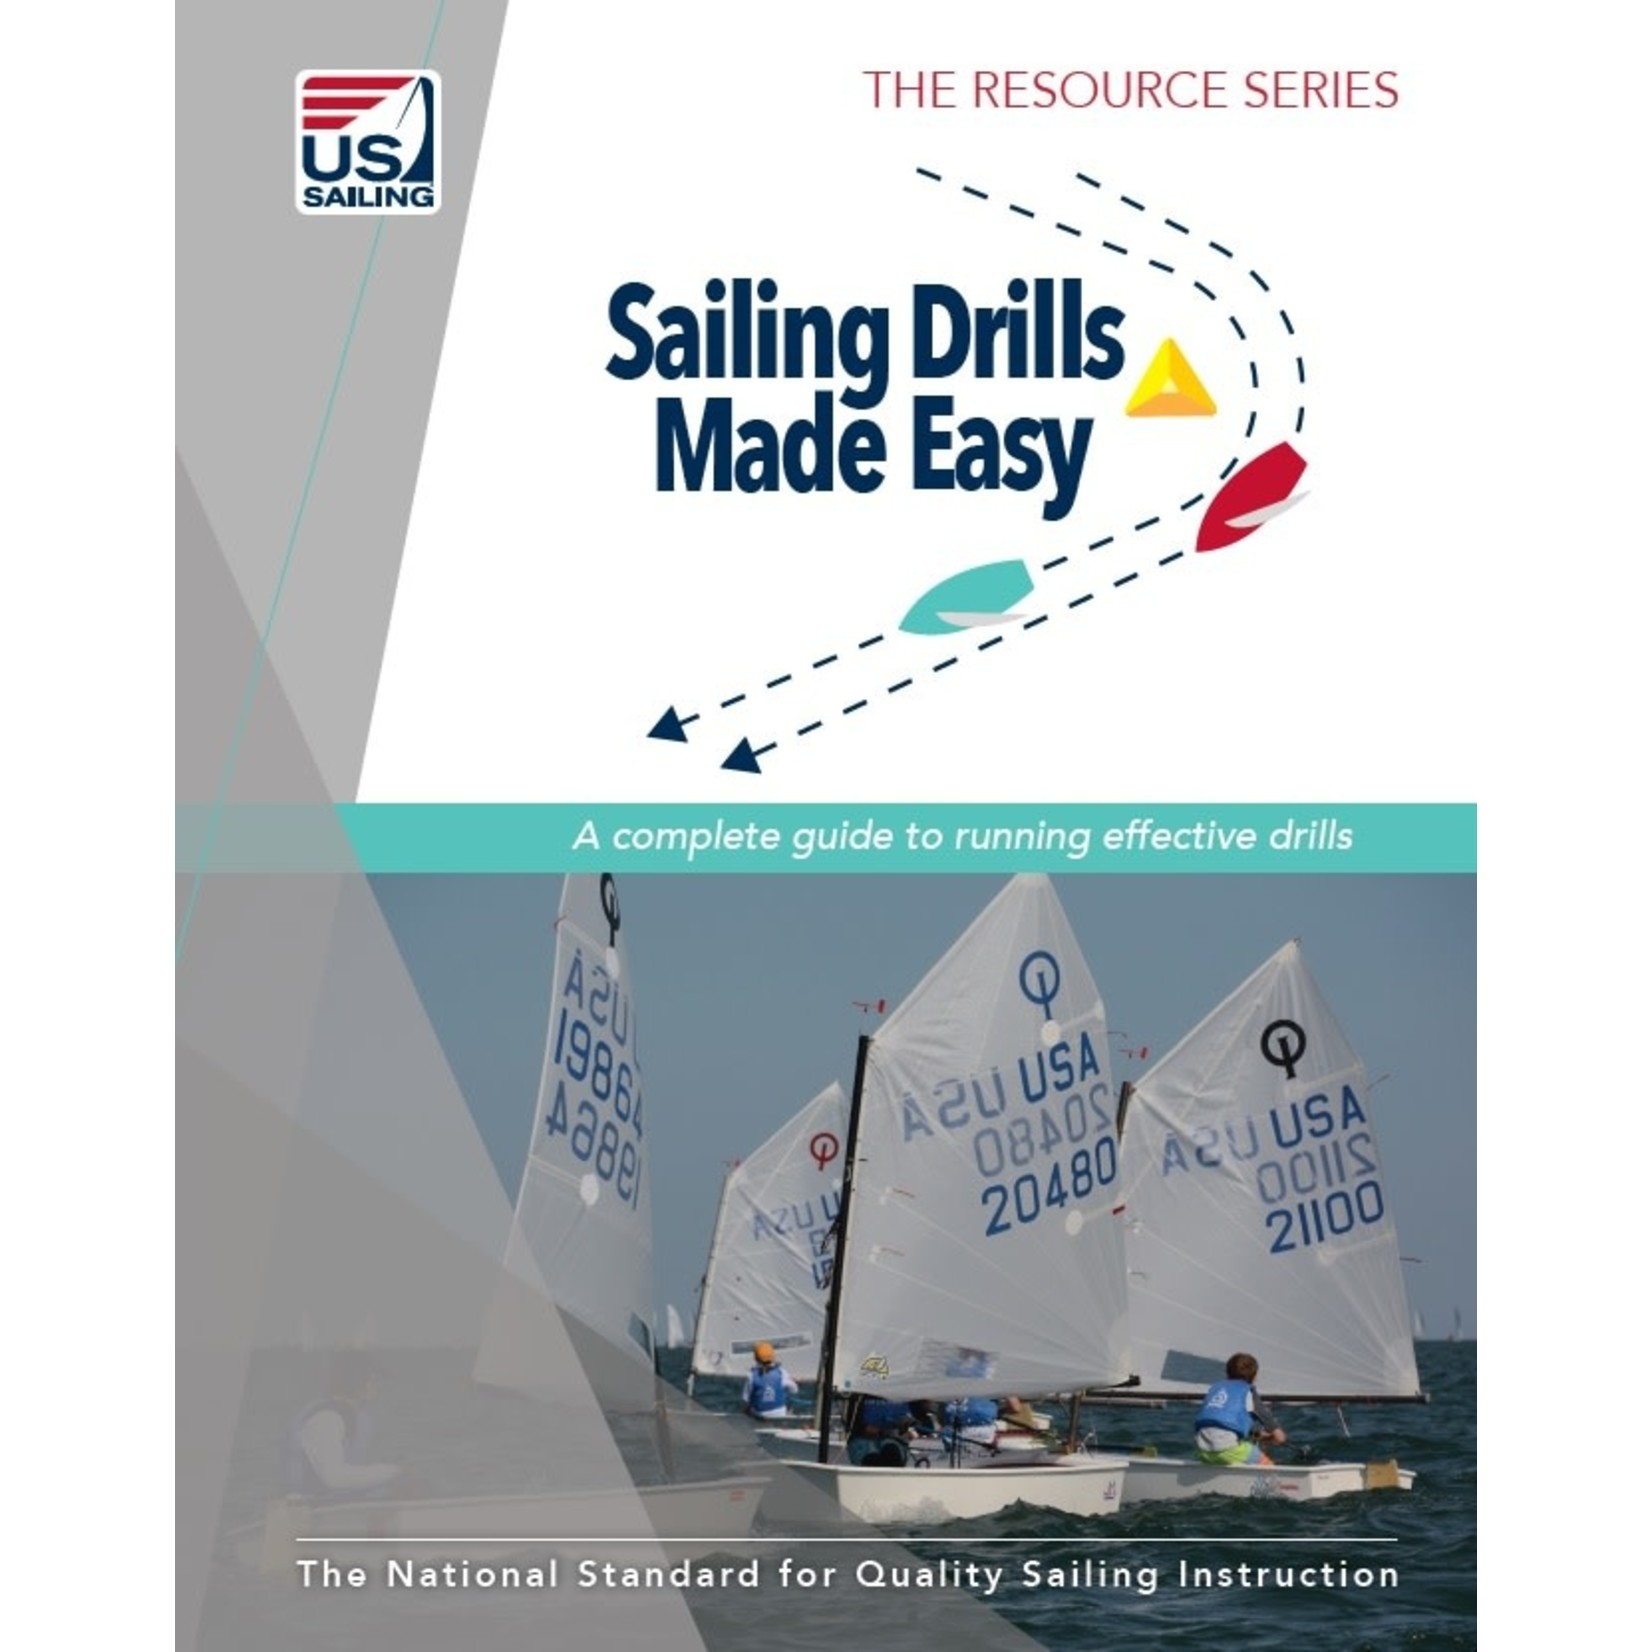 TEXT Sailing Drills Made Easy 2nd Edition